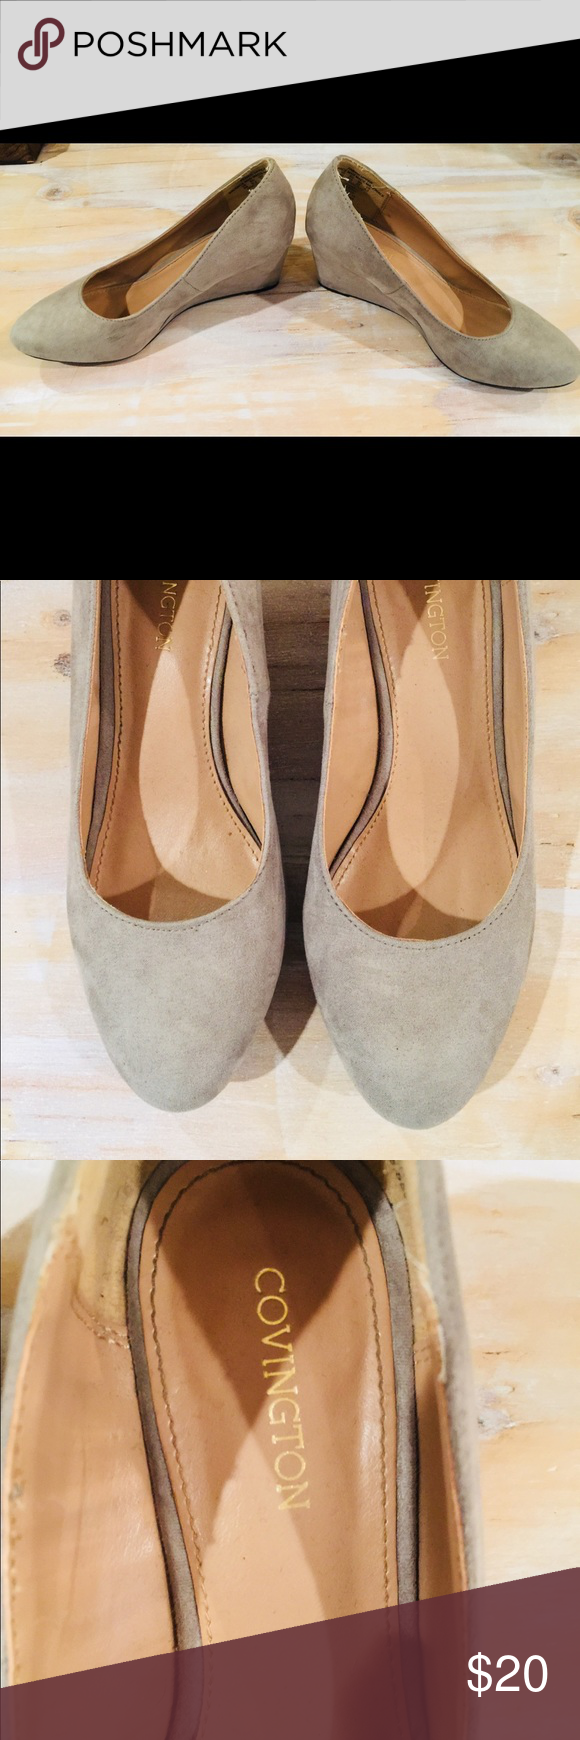 c3db665a7d74 Convington Gray Wedges Size 6 Tread boldly in this women s Arcadia wedge  shoe from Covington.